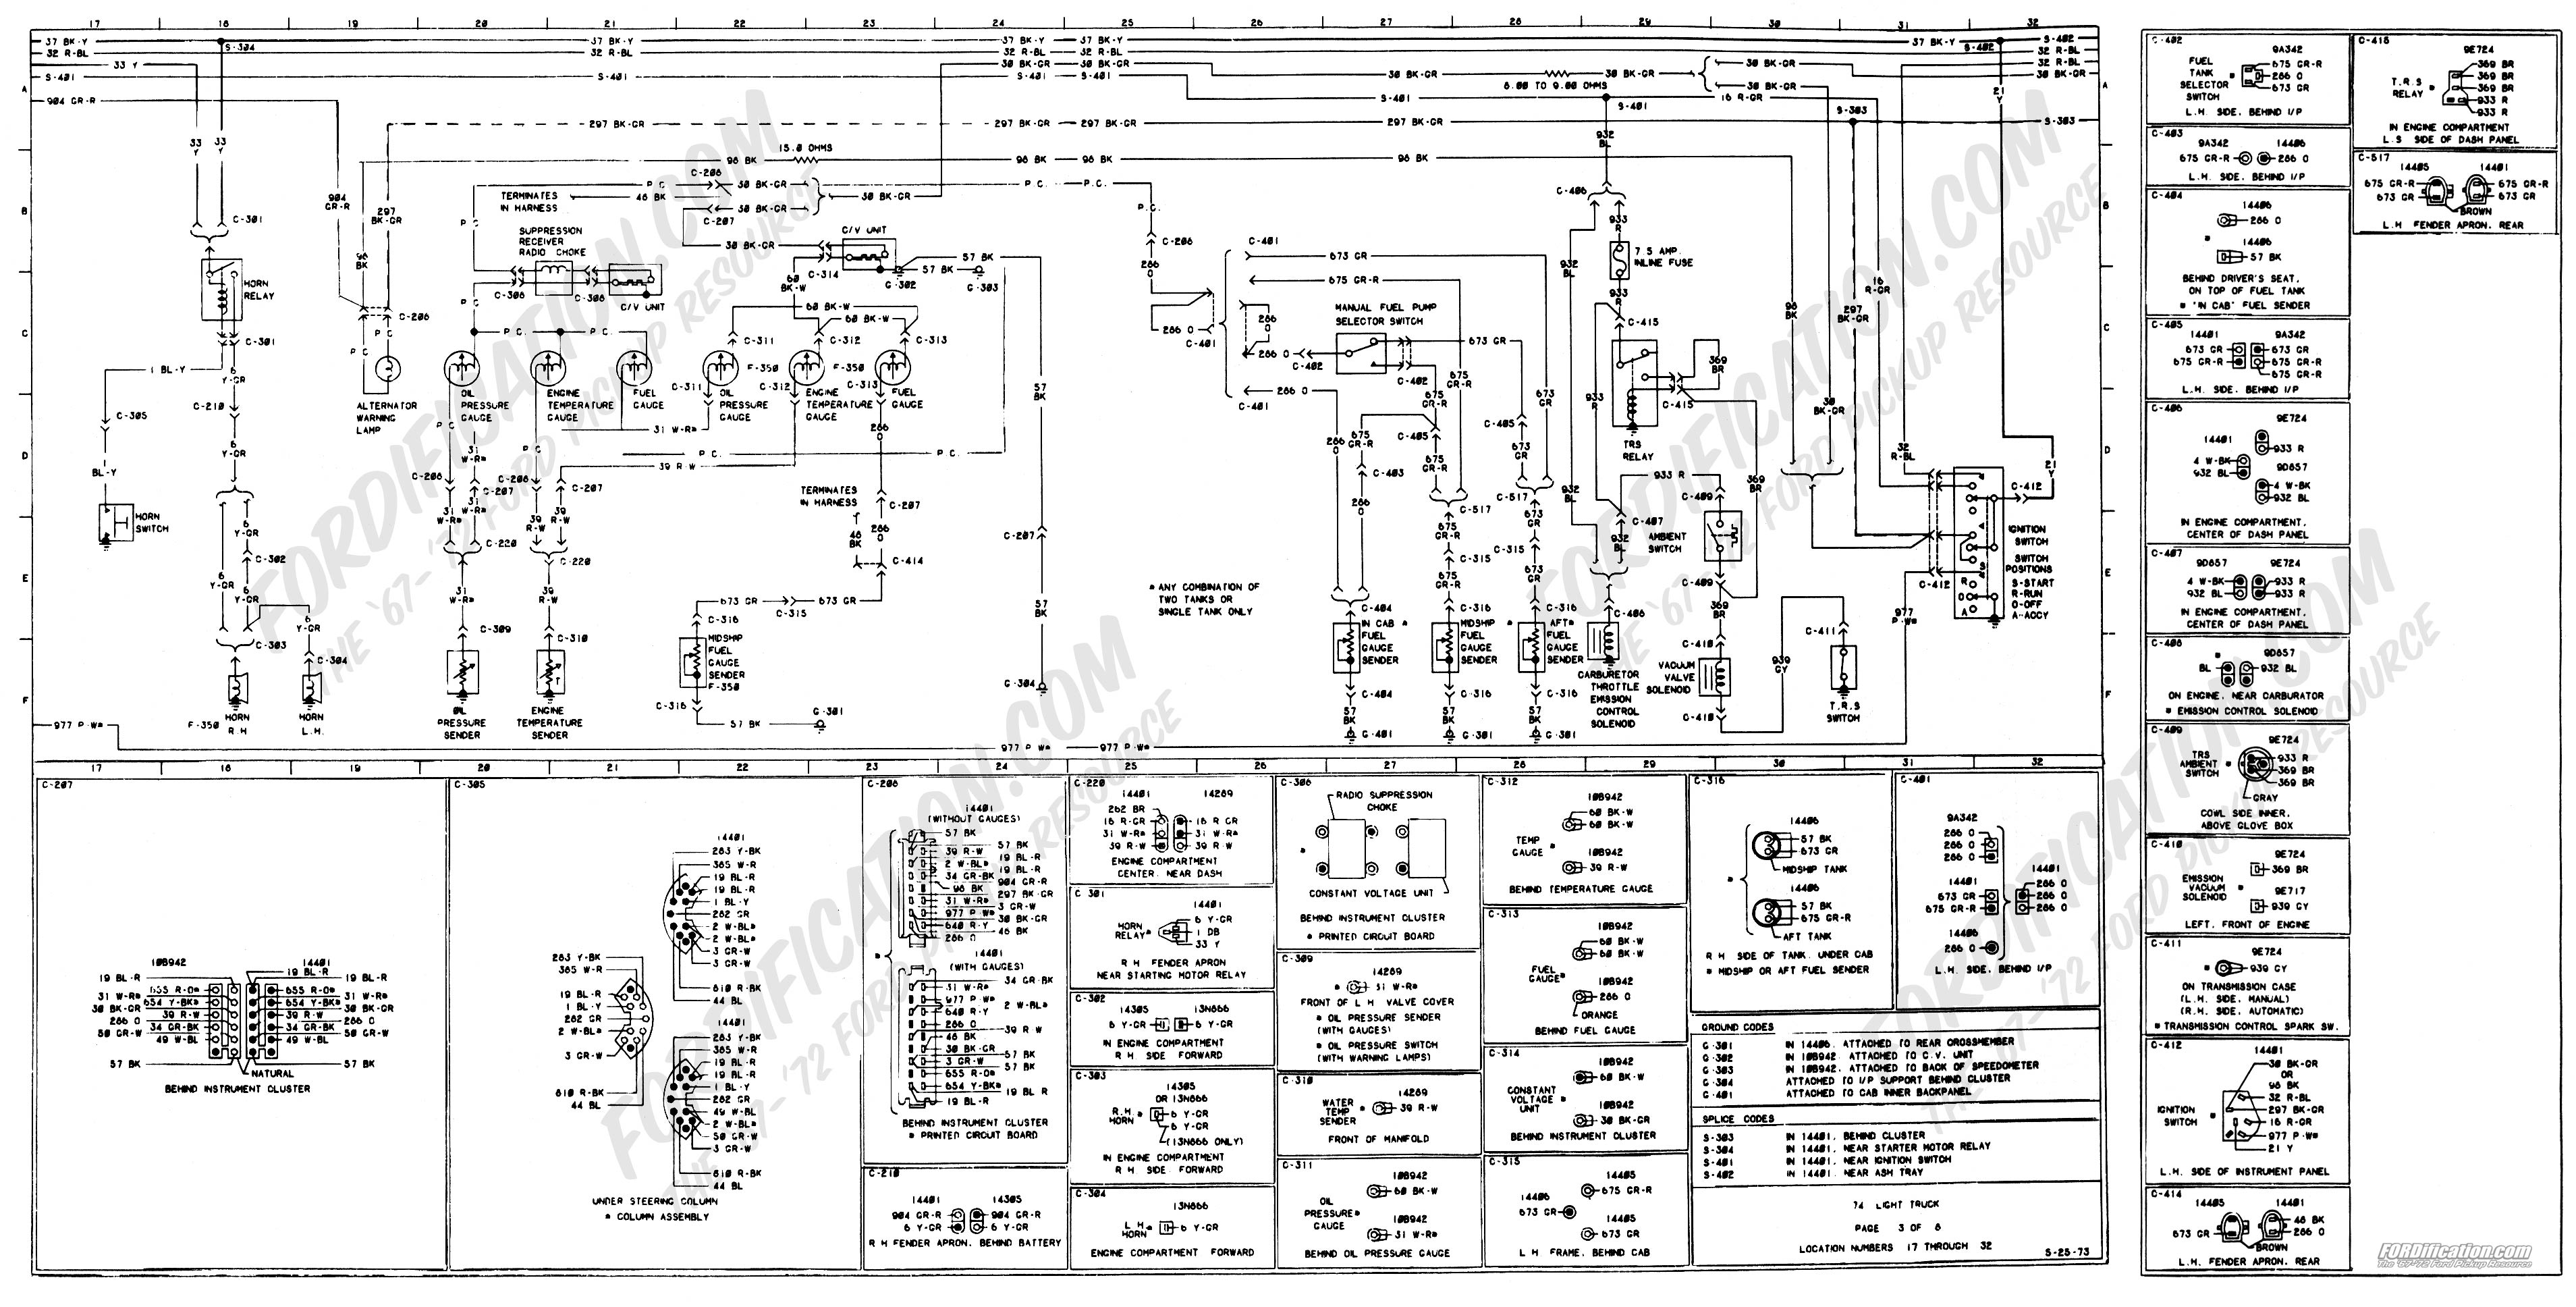 1973 1979 ford truck wiring diagrams schematics fordification net rh fordification net 1979 ford f100 wiring harness 1979 ford f150 radio wiring harness